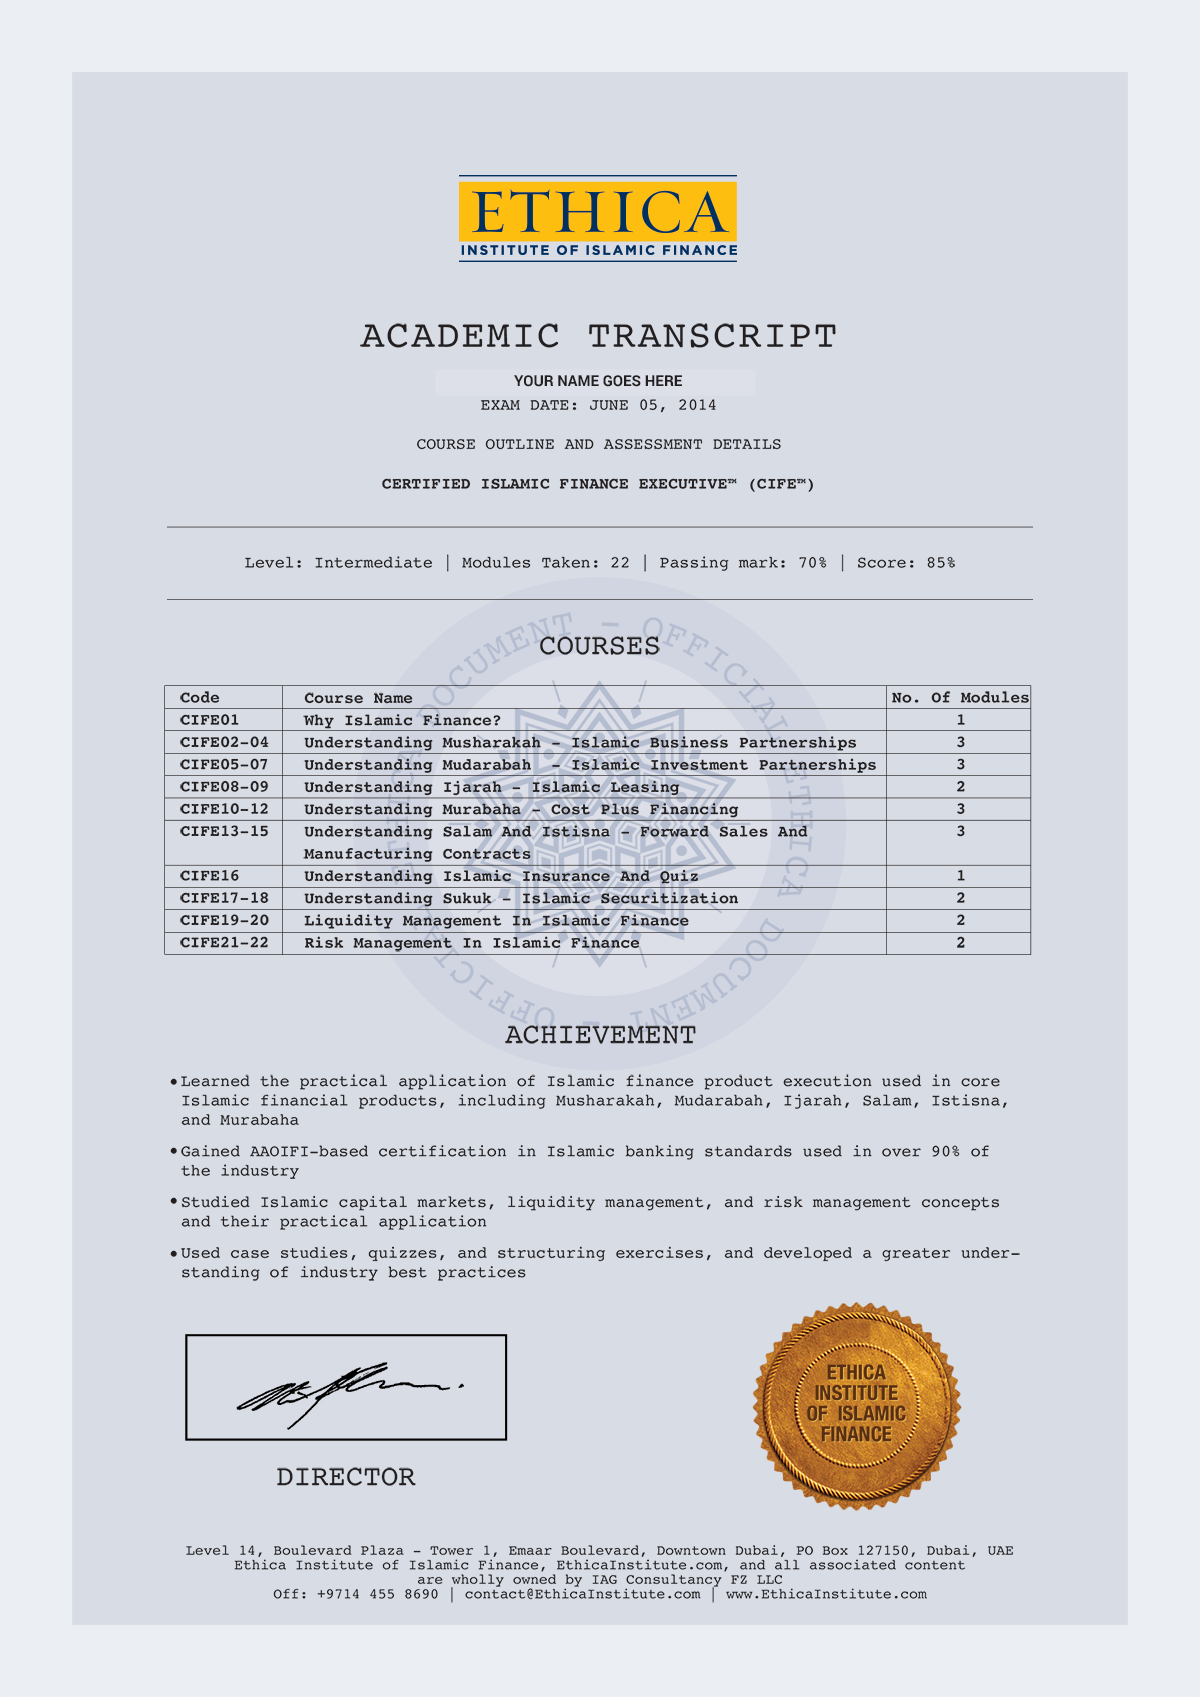 Ethica academic transcript fullg cife certificate yadclub Gallery